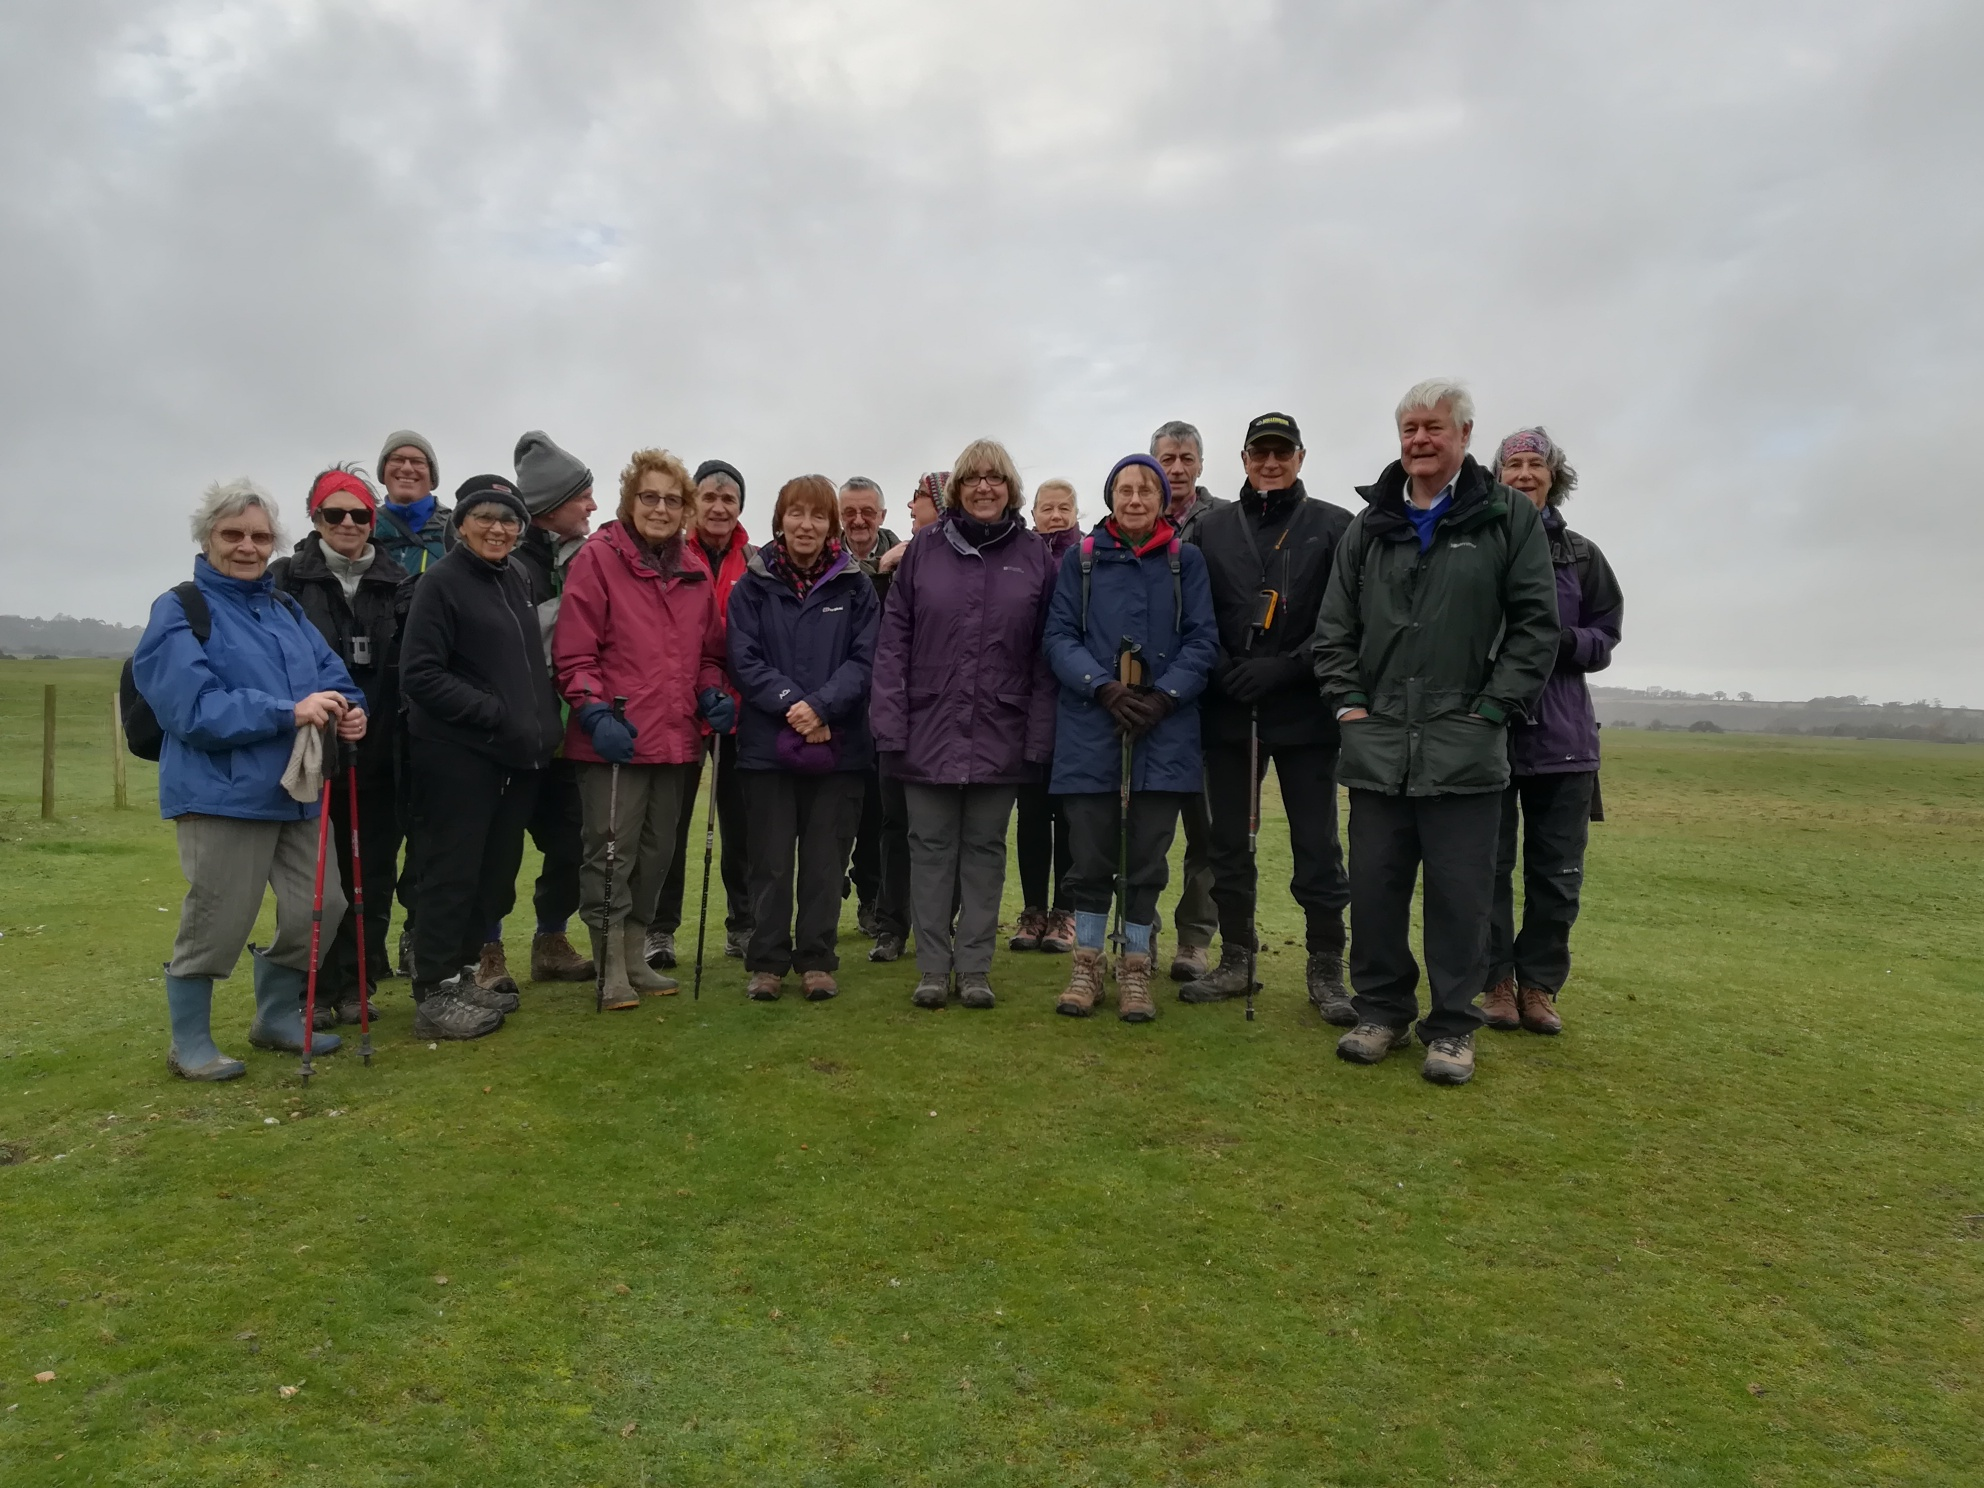 Walking group, near Rye Harbour